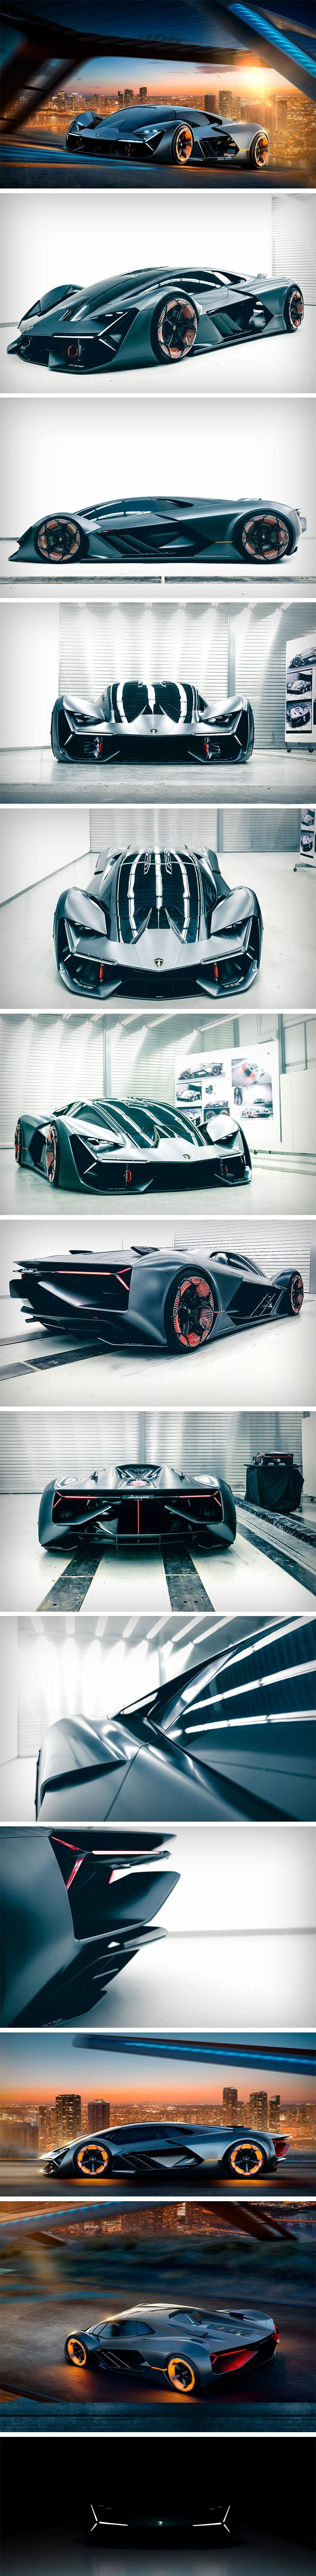 It's hard to imagine Lamborghini ever ditching the guzzle of a petrol engine for a silent hyperdynamic electric system. It's thanks to the beautiful design of the Terzo Millennio, that shows that maybe Lamborghini is thinking very seriously about a move into the future of electric vehicles. Working alongside MIT to develop one of the most advanced cars on the road, Lamborghini is grabbing the bull by the horns with this concept, and it is certainly paying off.